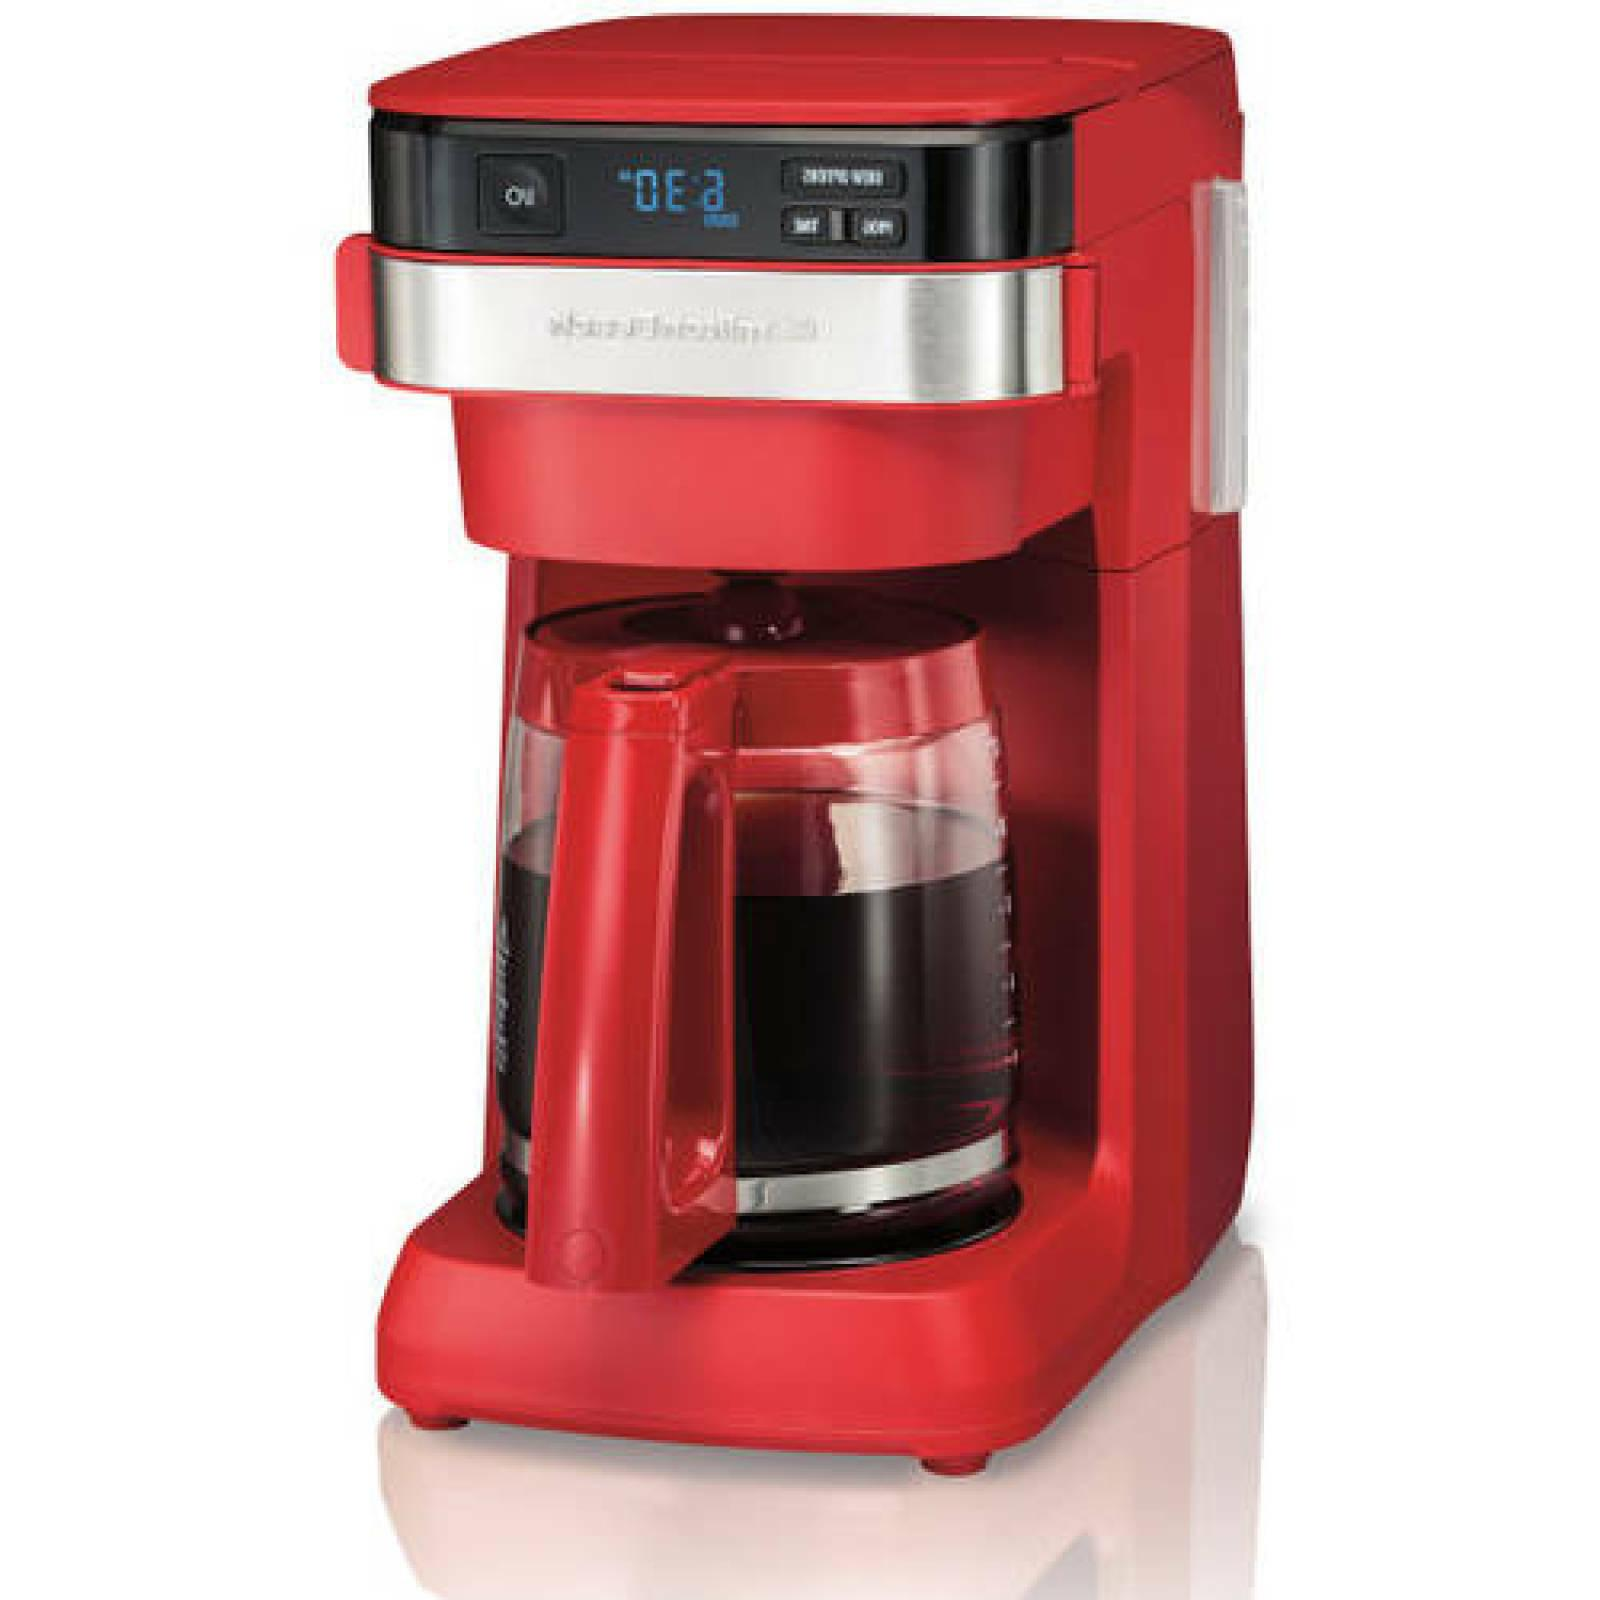 Hamilton Beach 12 Cup Programmable Coffee Maker Red Home Off